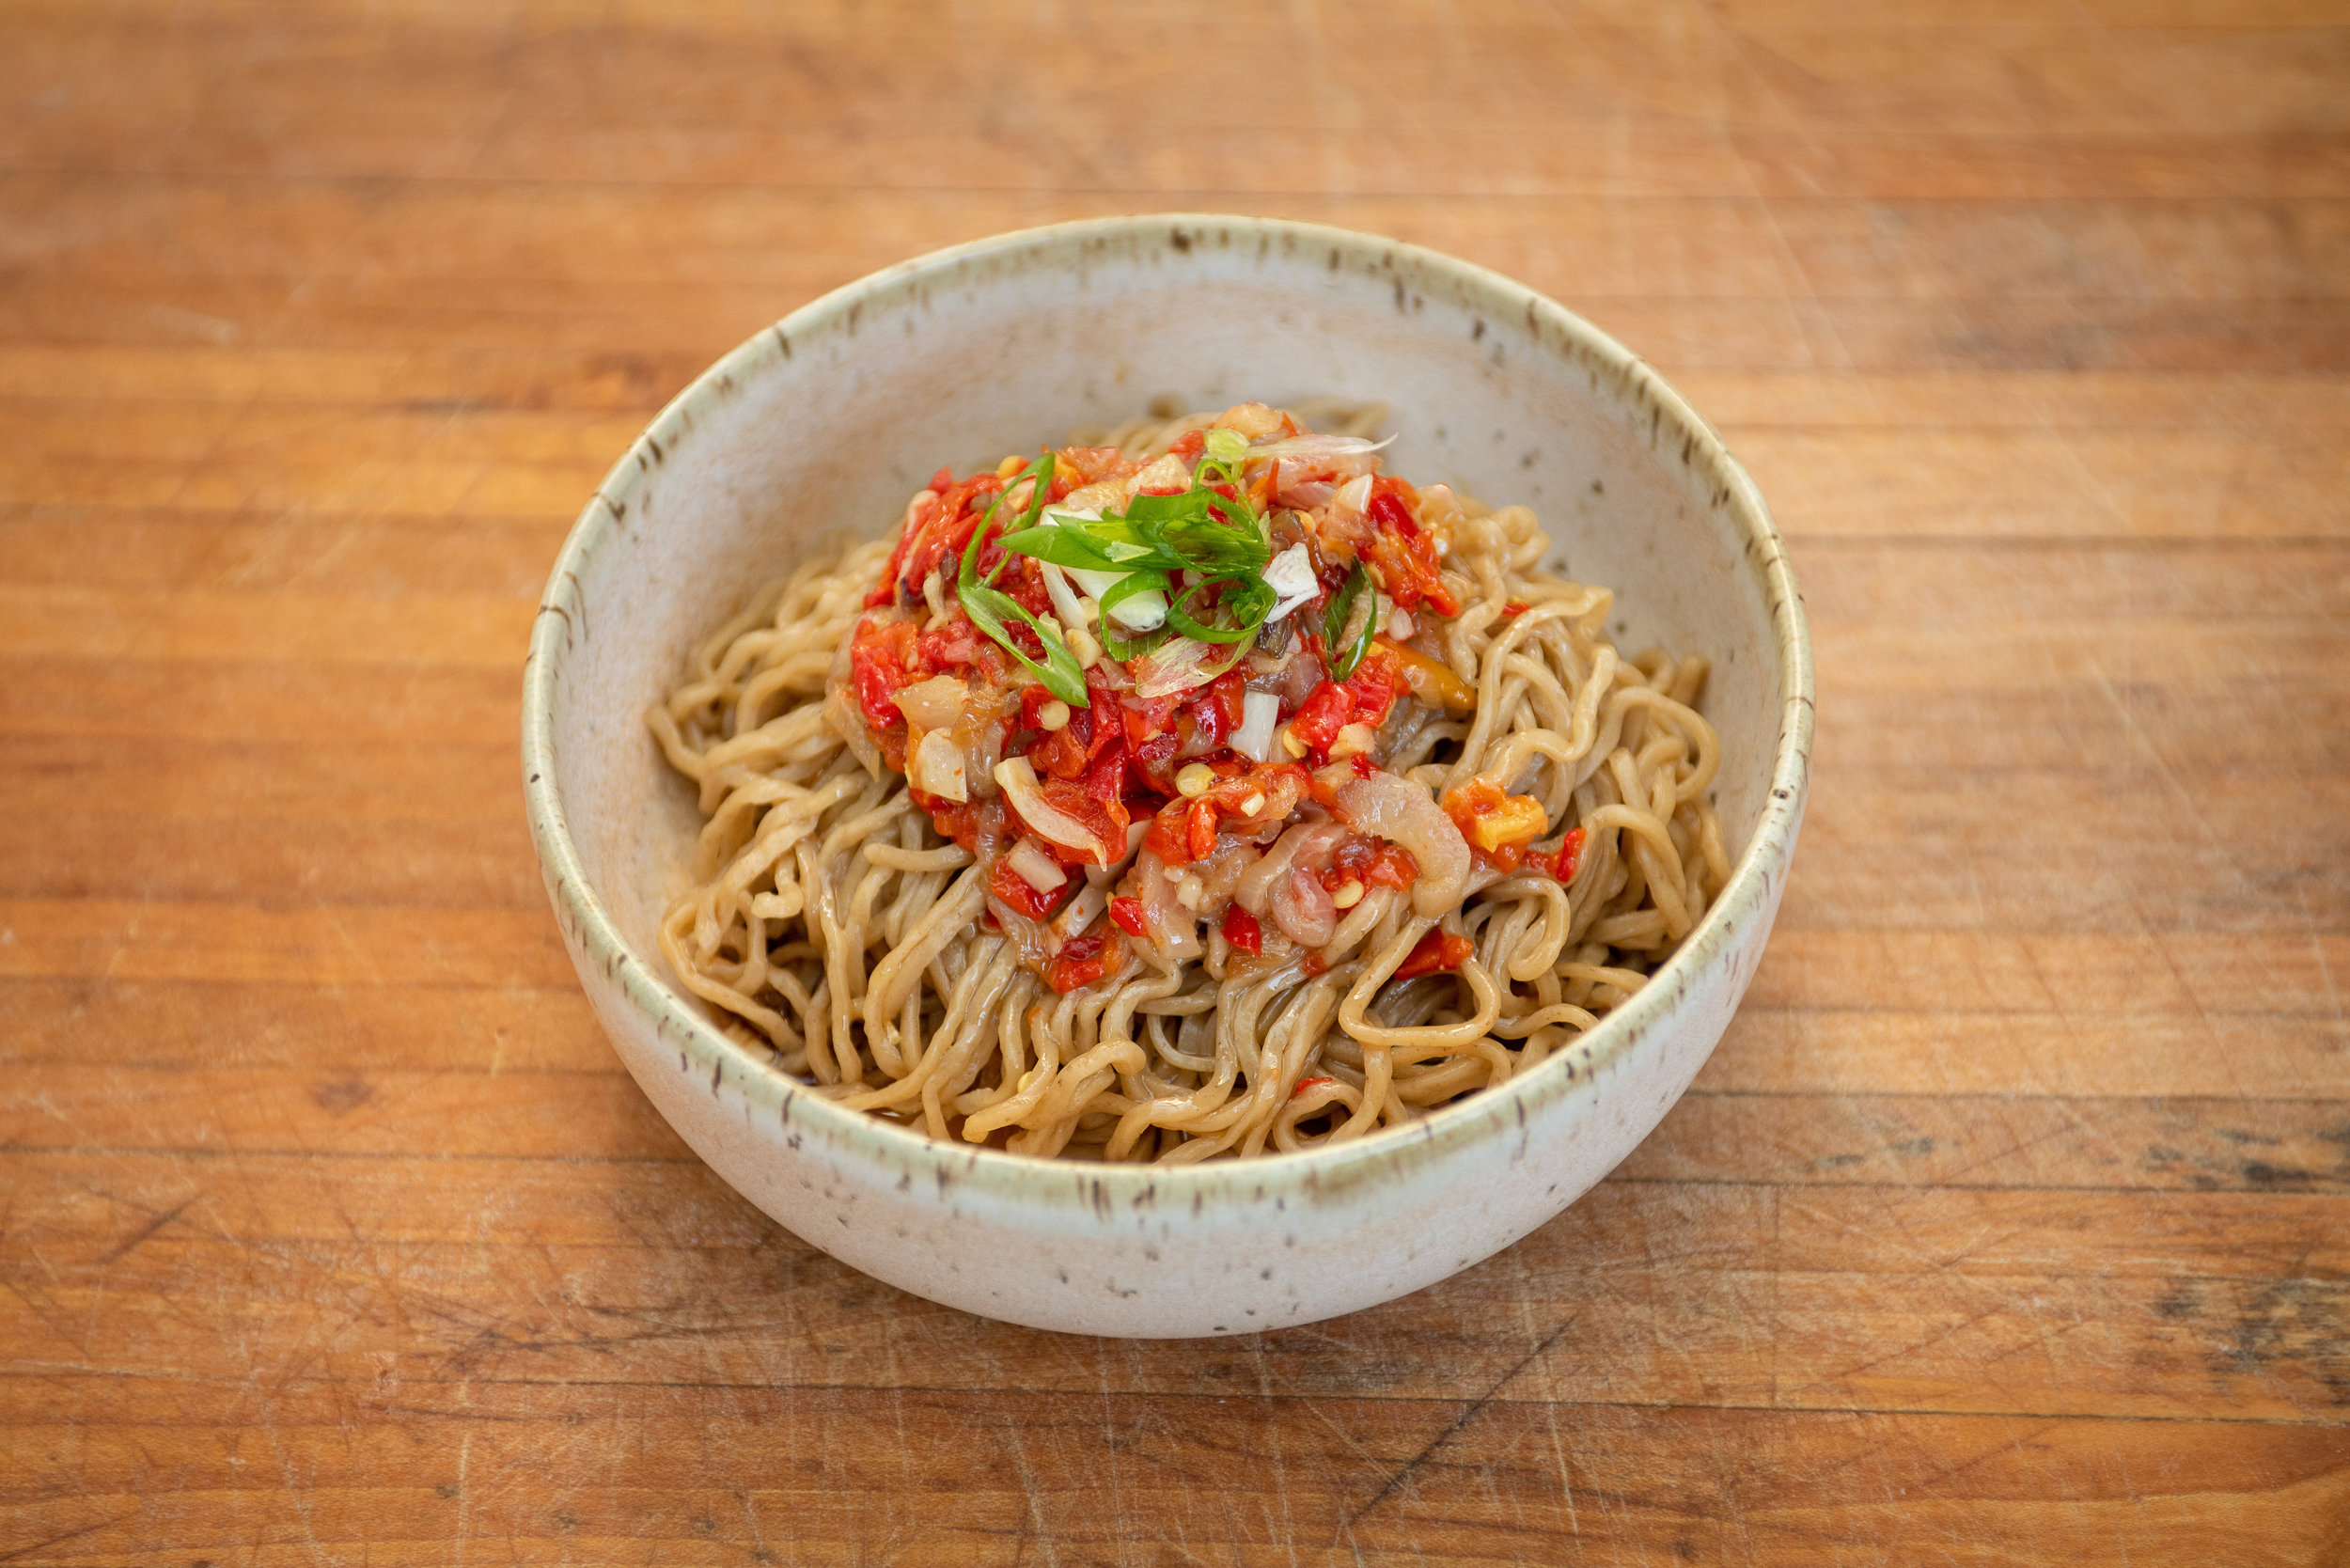 chili garlic noodles-056.jpg